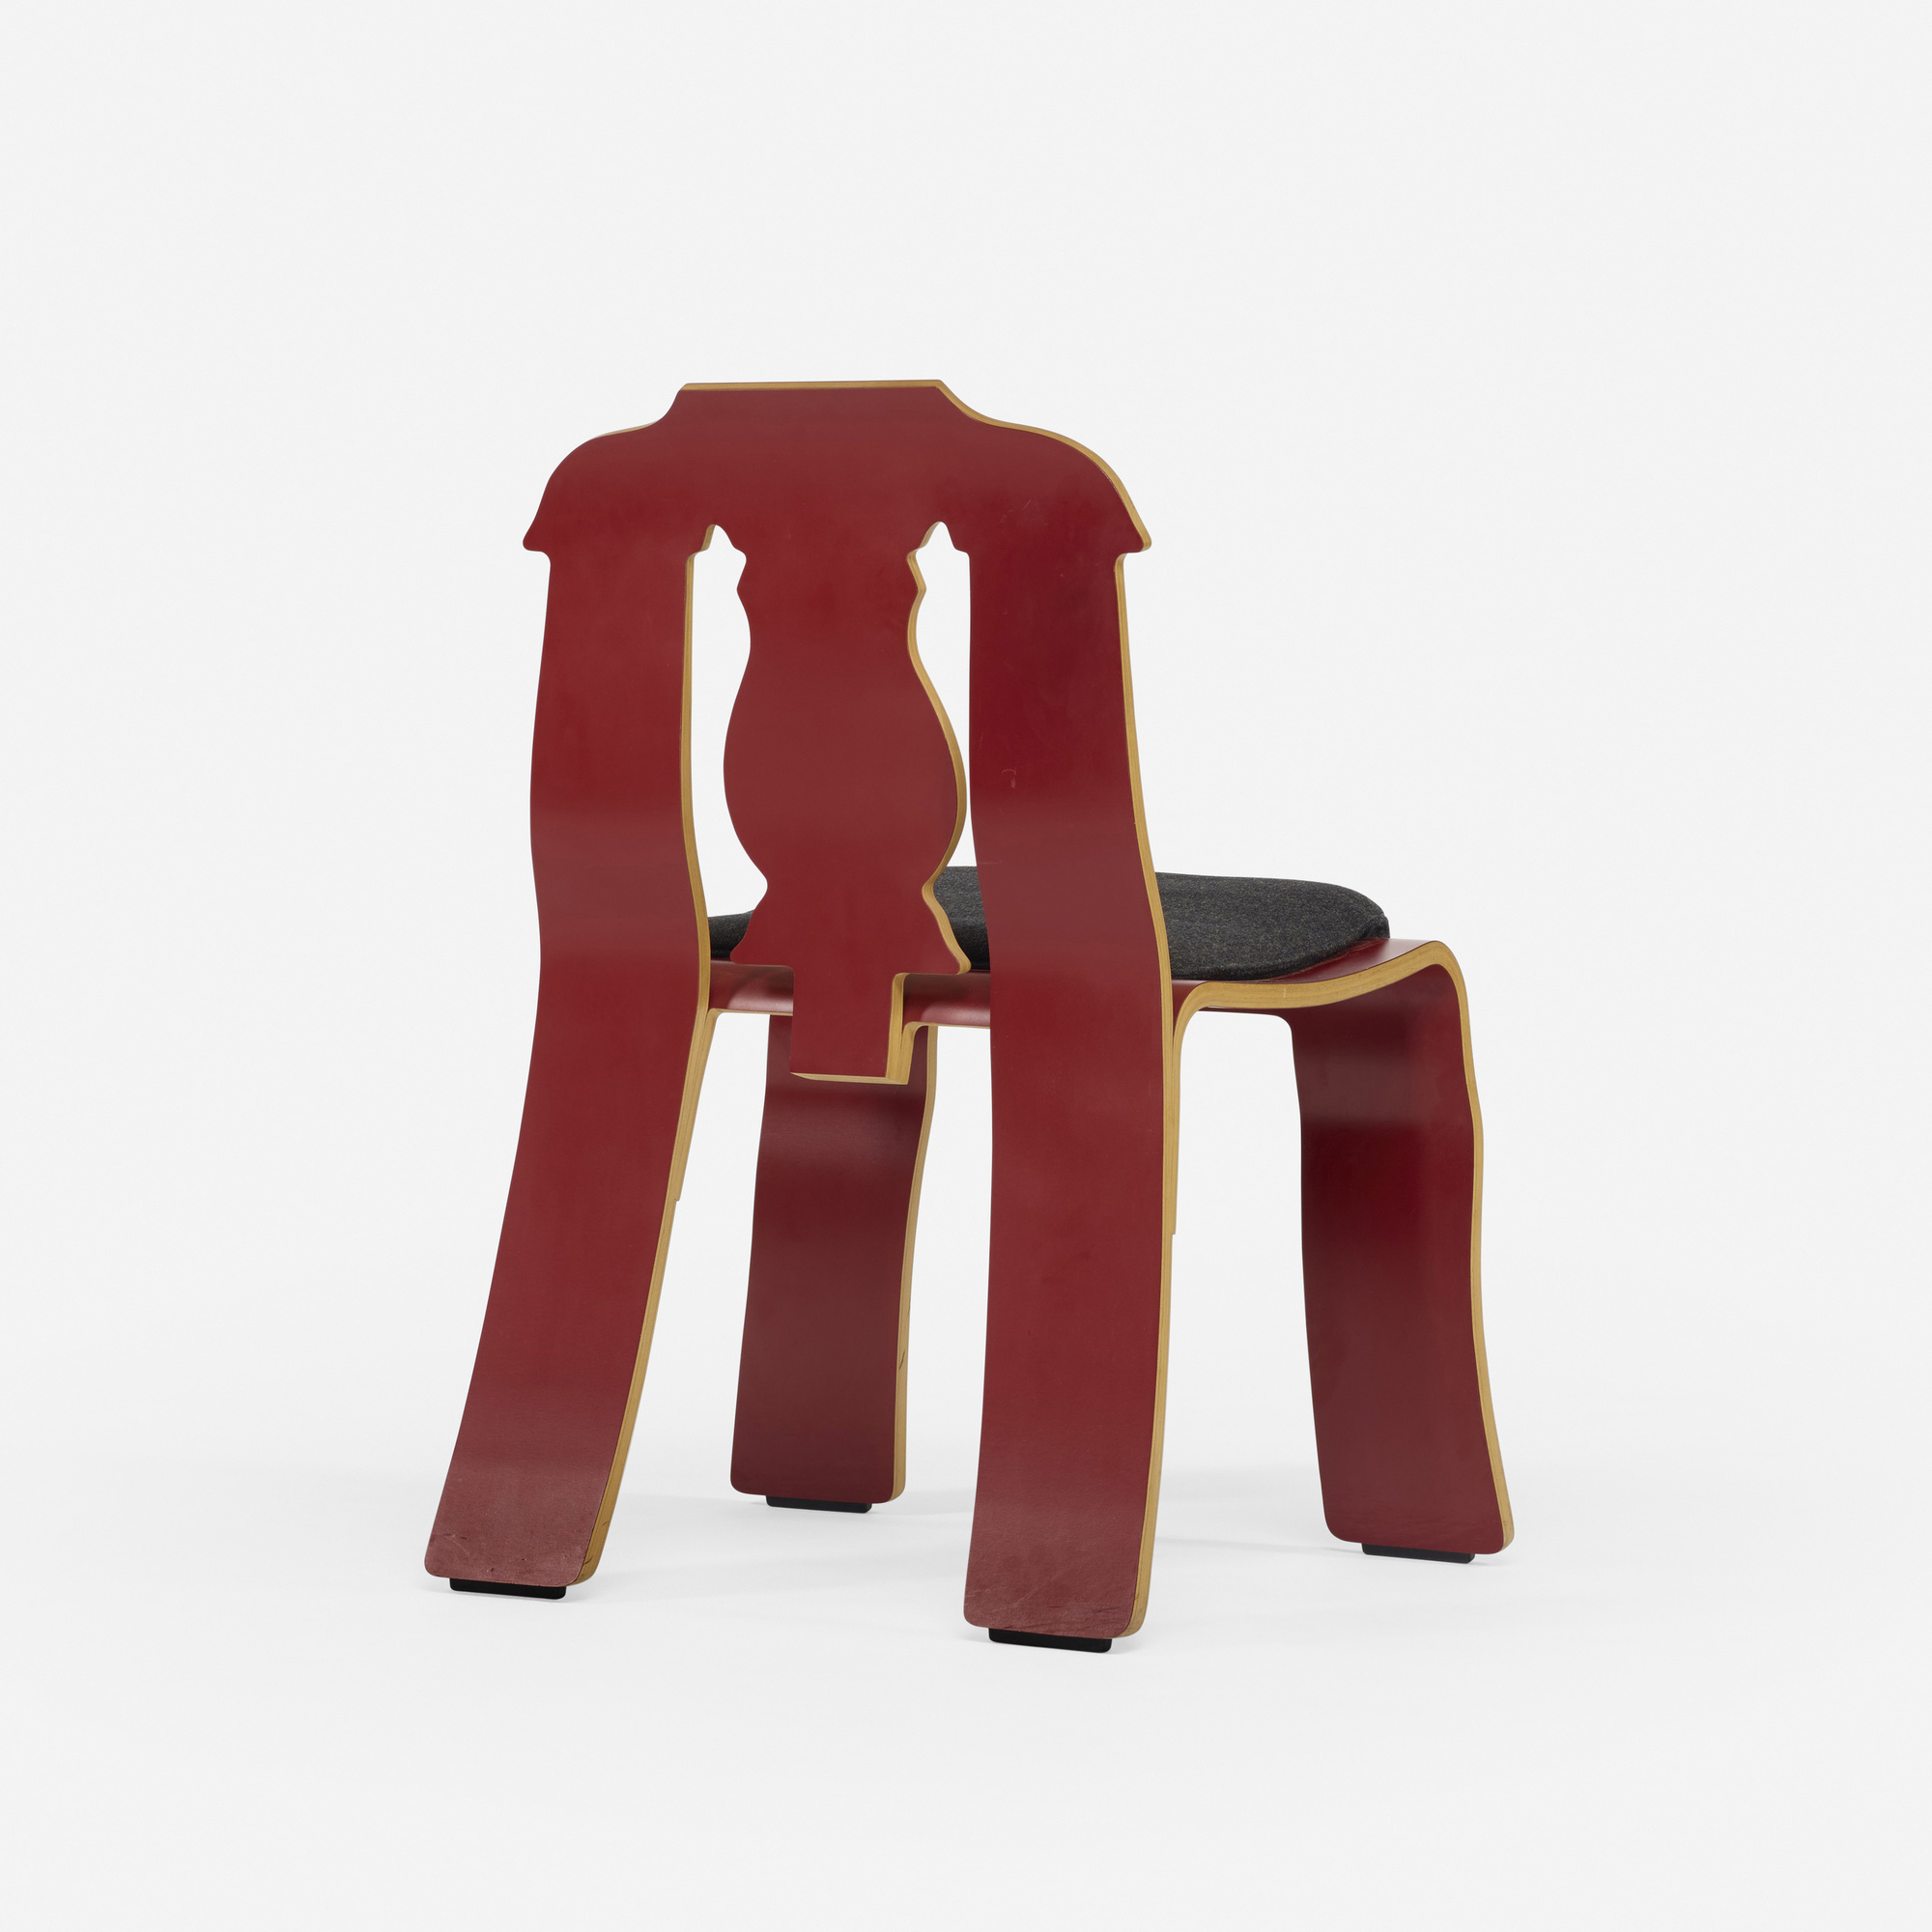 428: Robert Venturi / Empire chair (3 of 4)